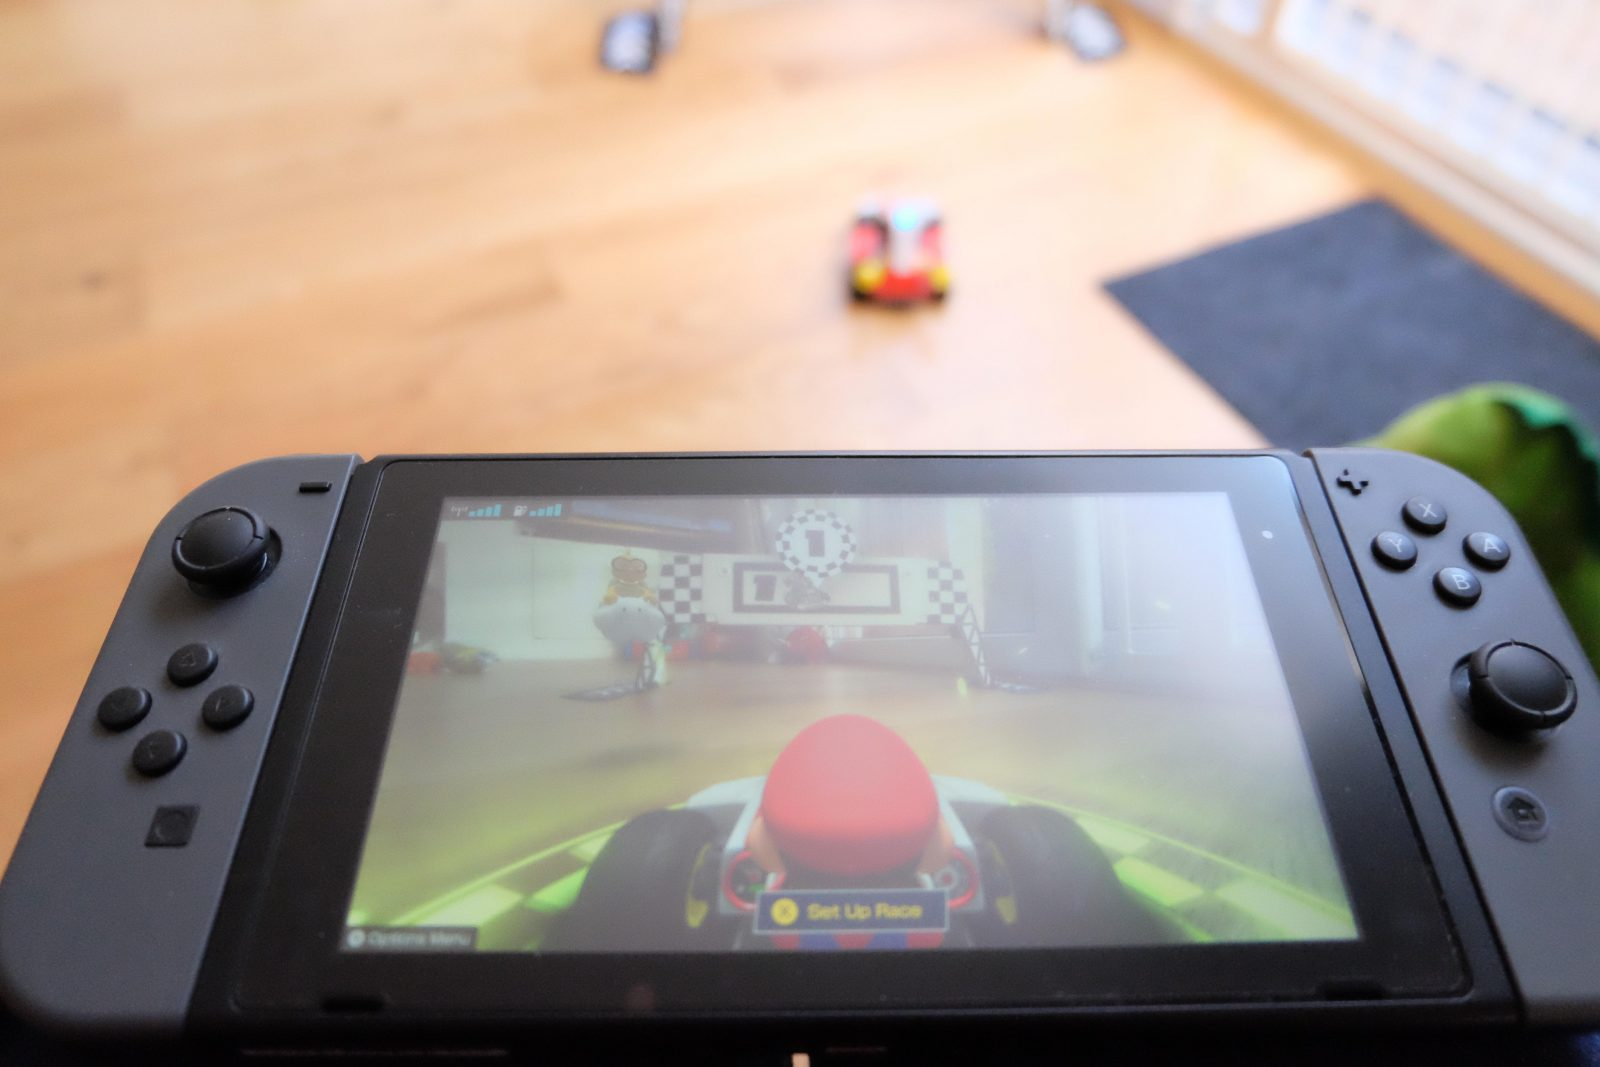 Mario Kart Live: Home Circuit Nintendo Switch Review, DSCF6304 1600x1067%, daily-dad, product-review%